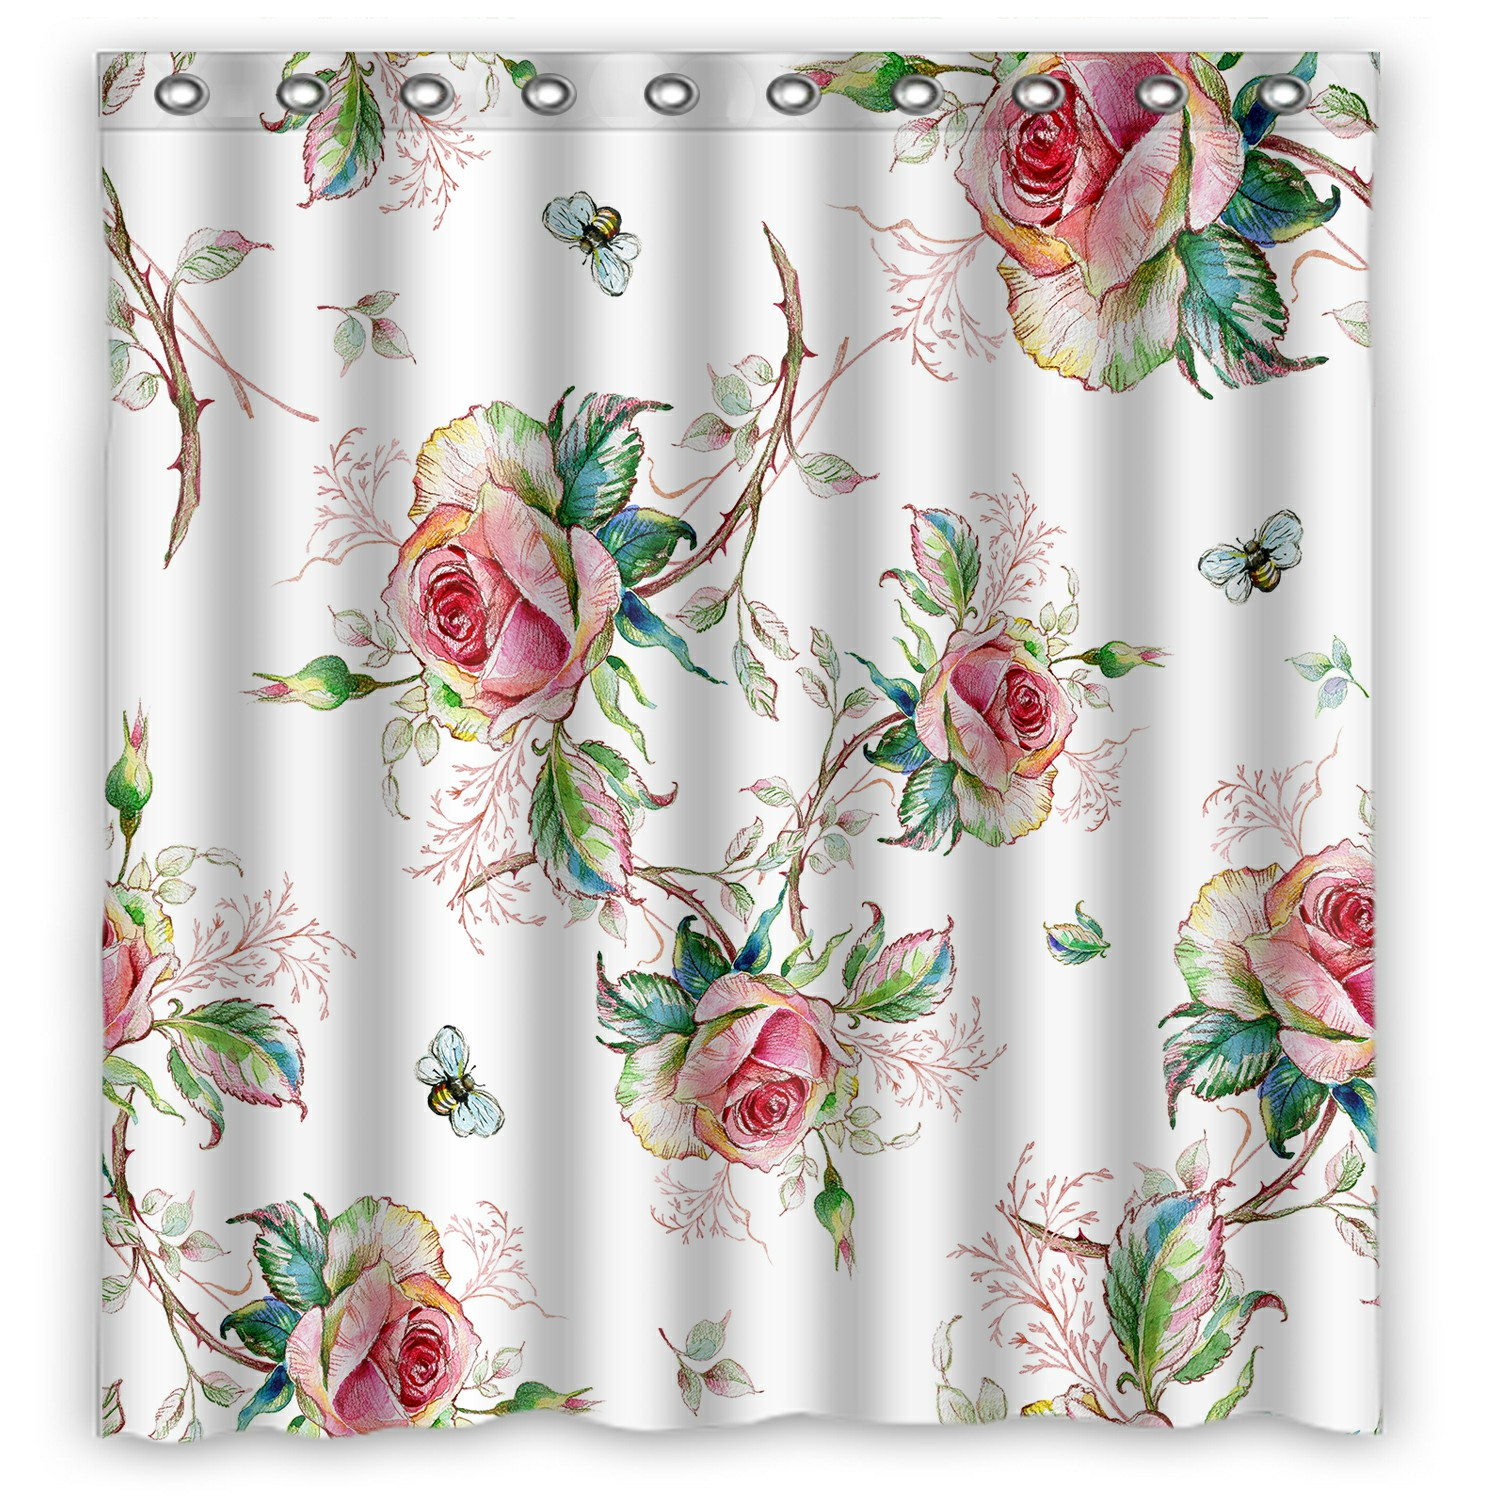 eczjnt rose pattern bumble bee shower curtain and hooks for home decor 66x72 inch walmart com